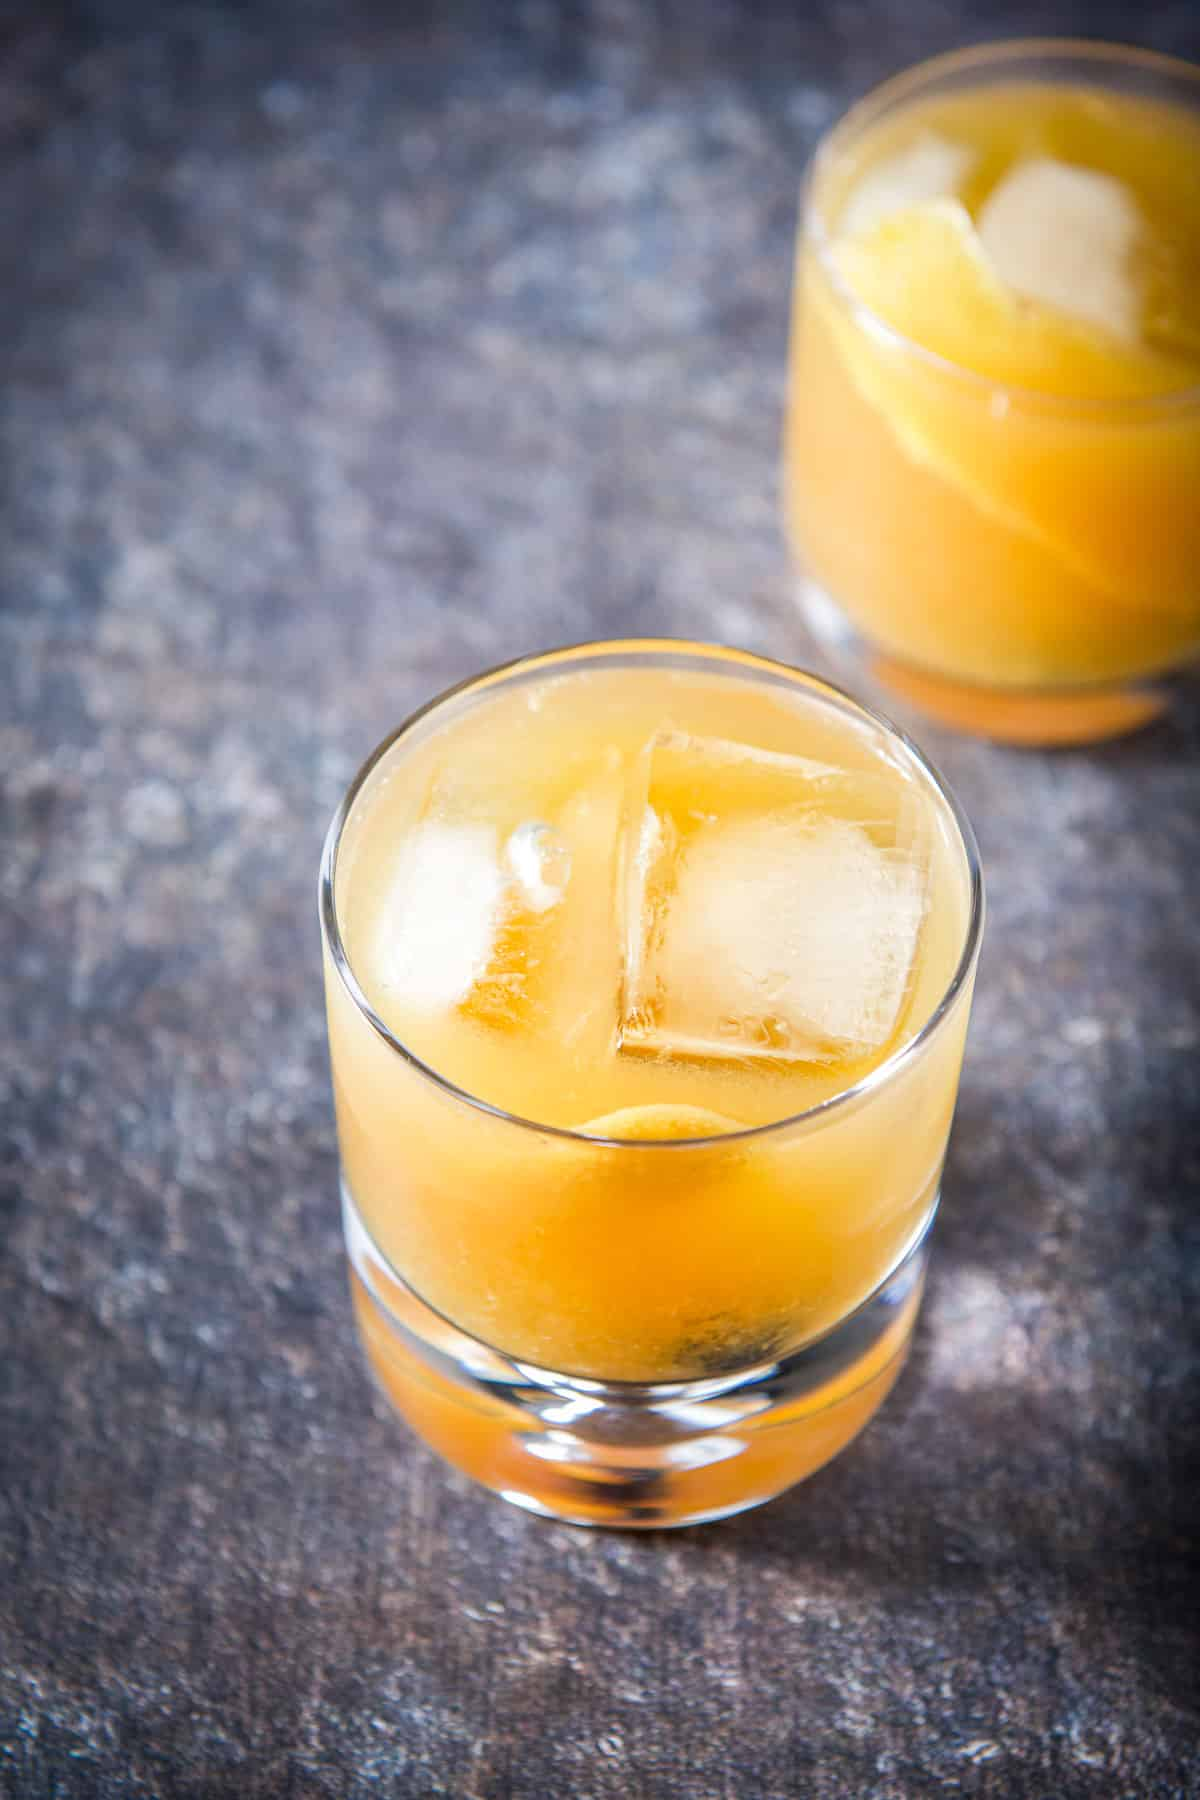 An almost overhead view of the orange juice amaretto cocktail with another in the back